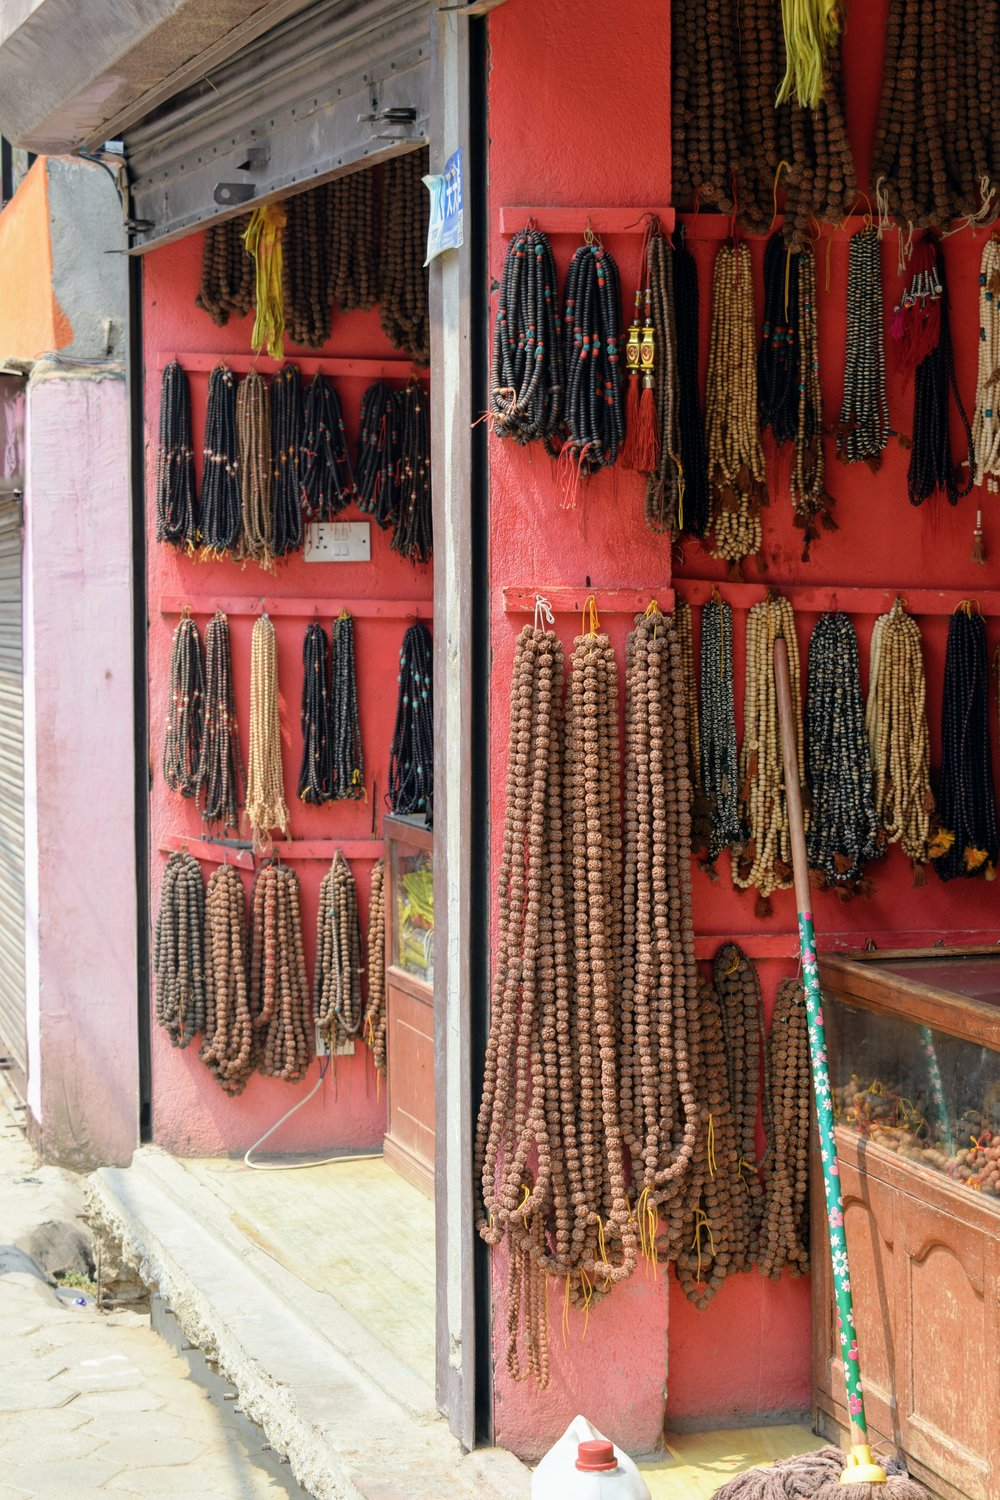 Prayer Beads for sale outside of Swayambhunath